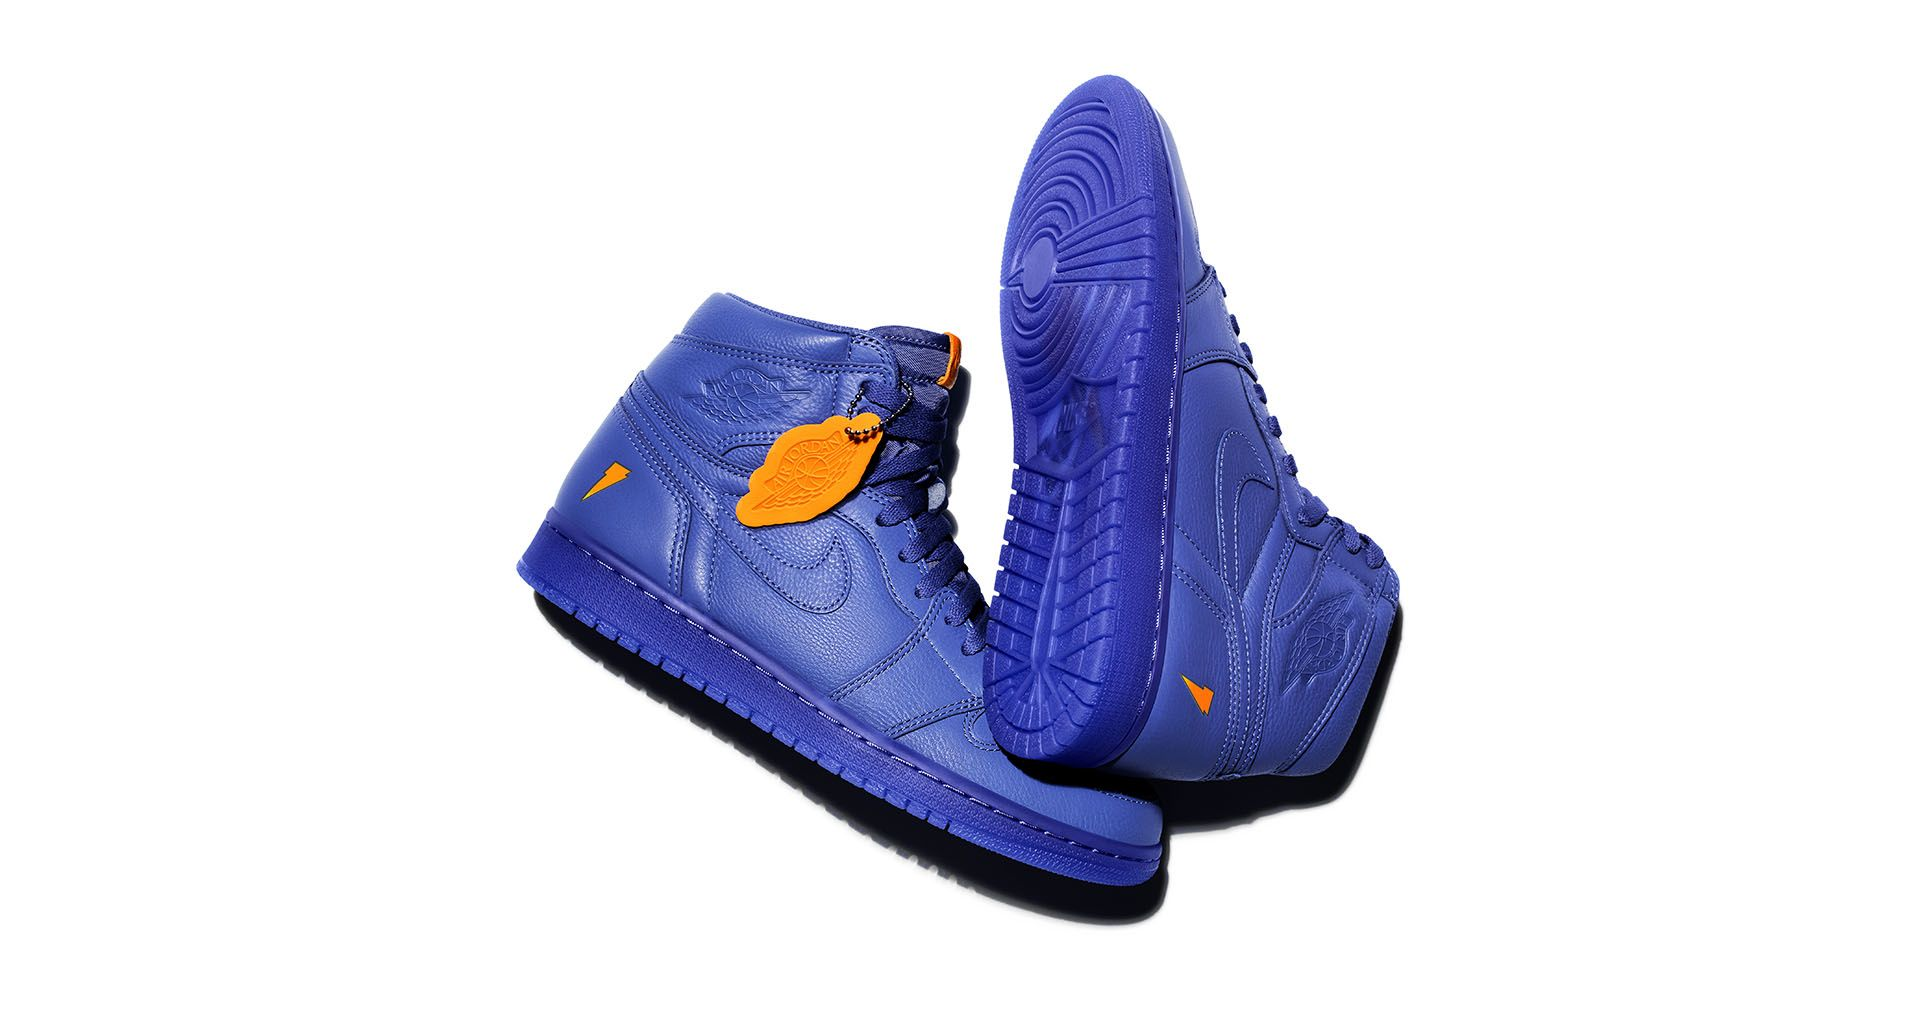 c3d4dbd5bd Air Jordan 1 High Gatorade 'Grape' Release Date. Nike⁠+ SNKRS